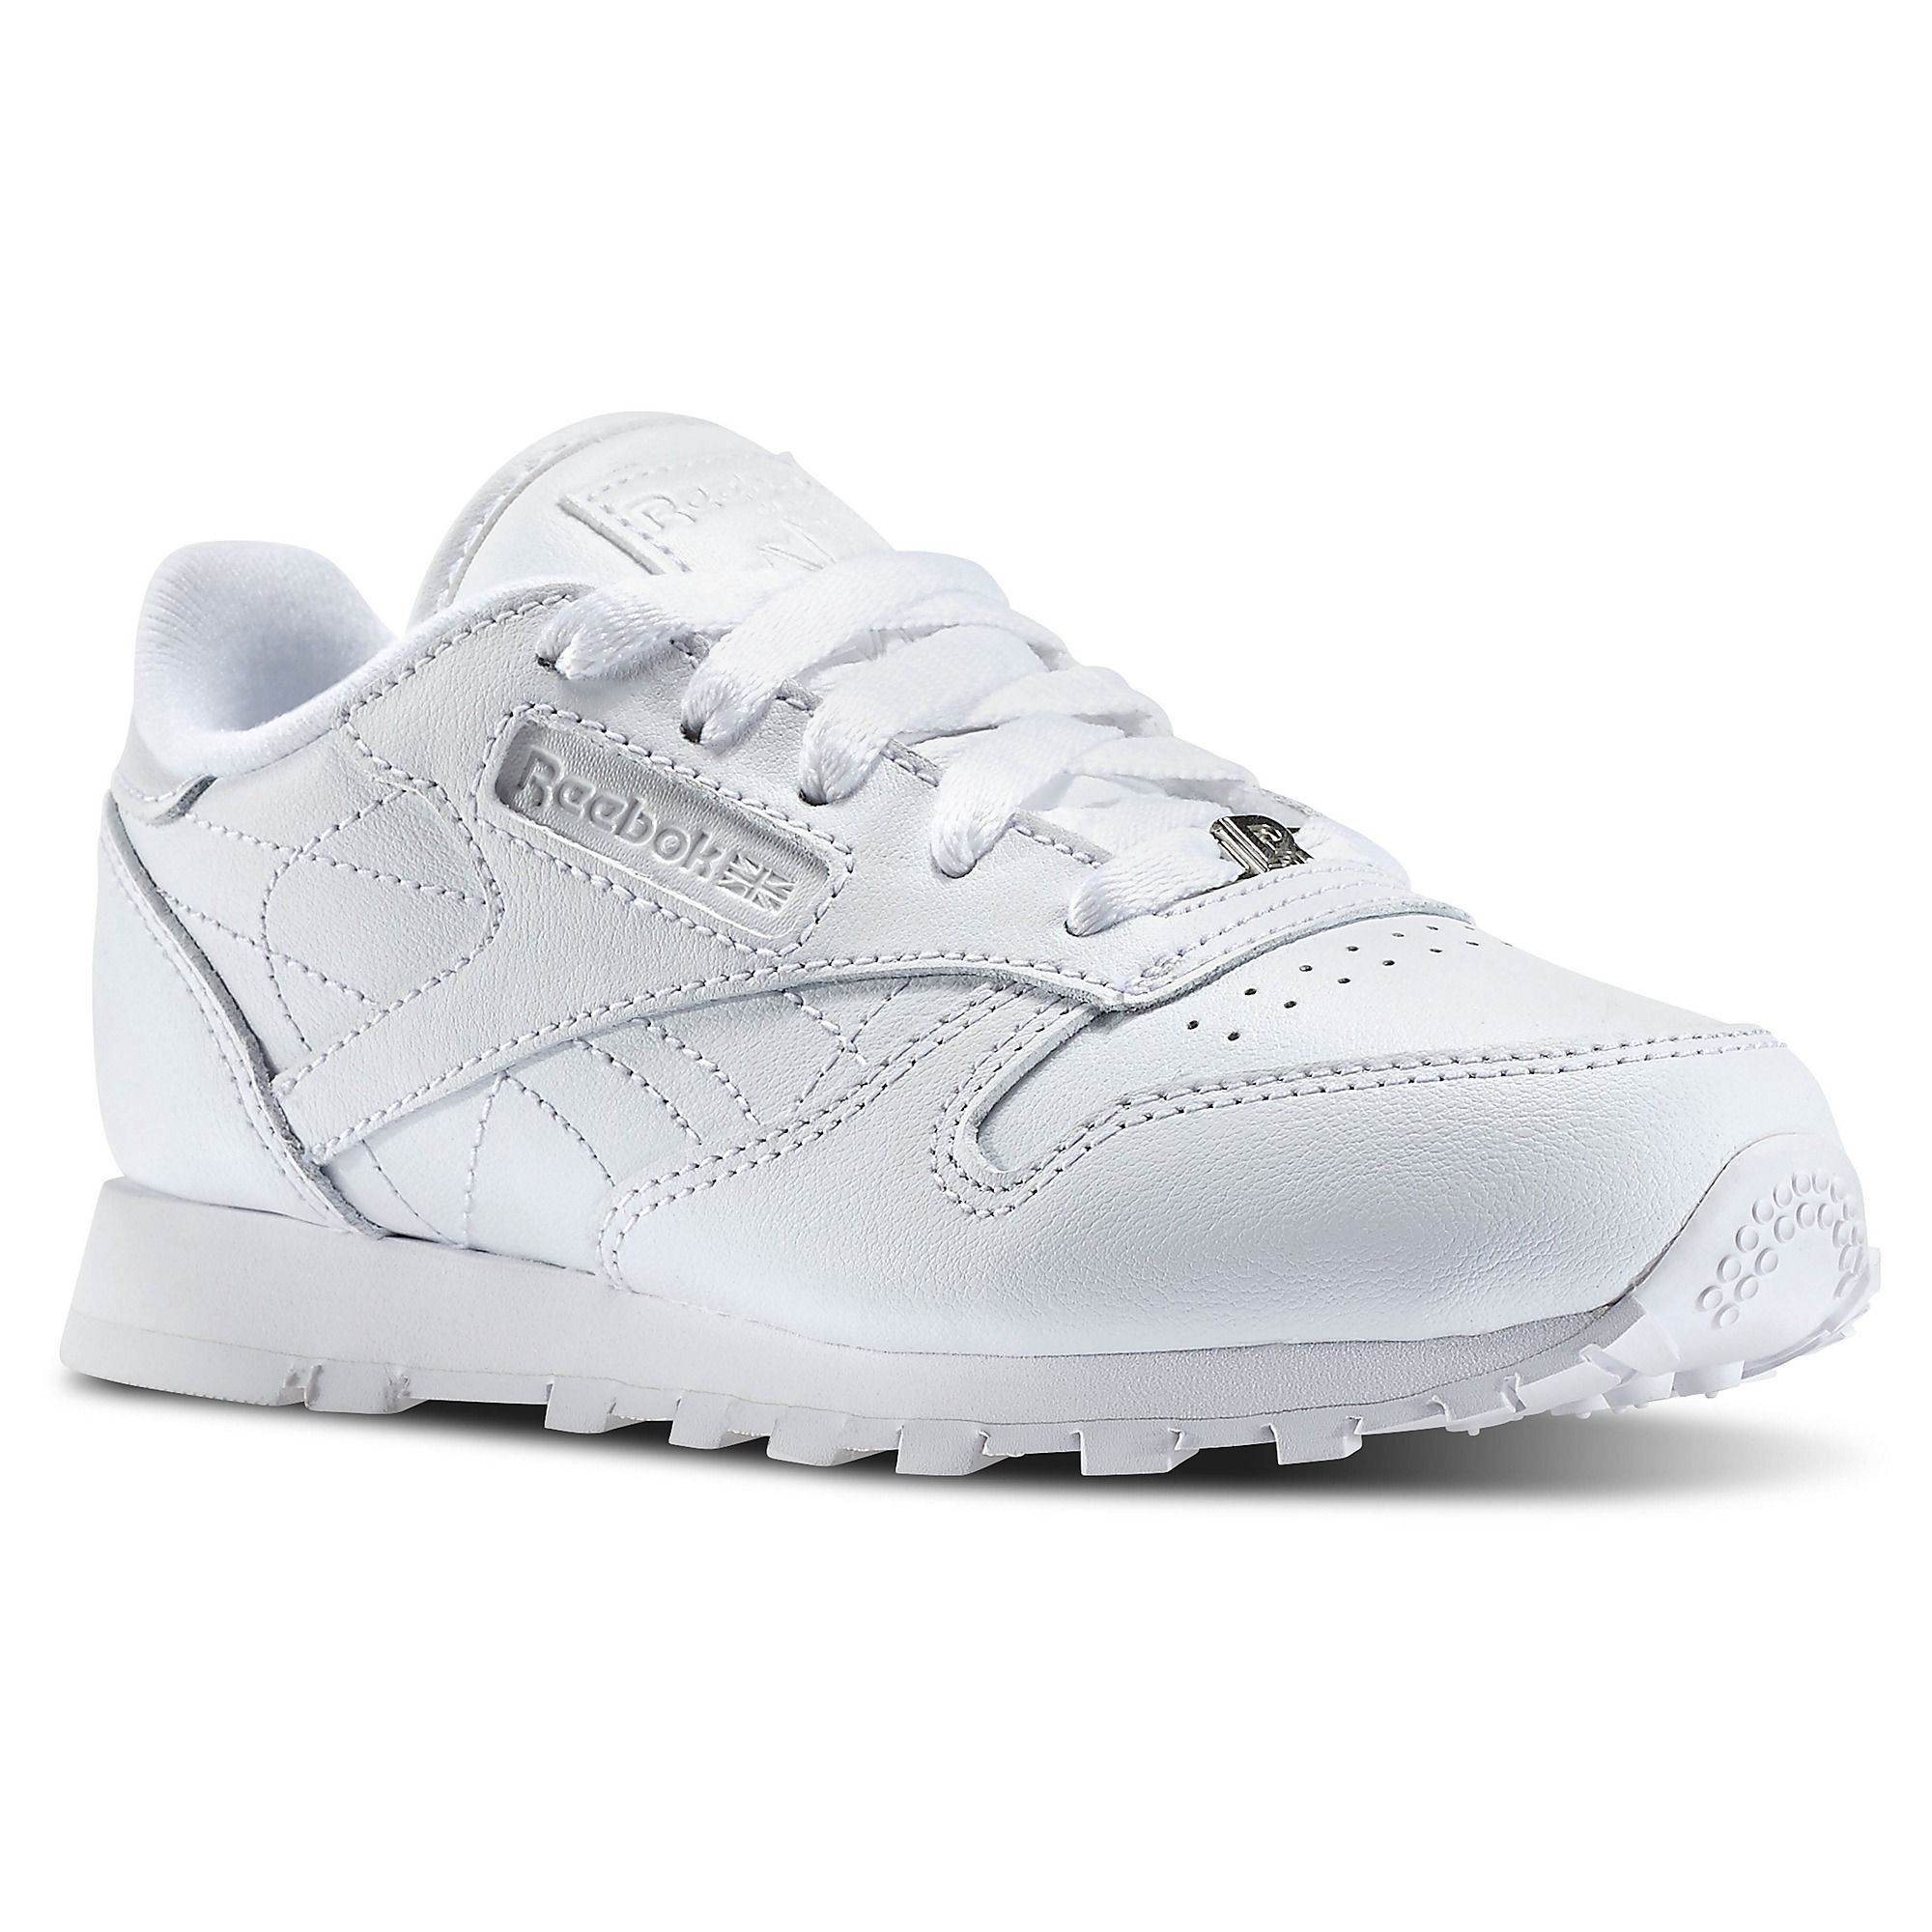 Reebok Classic Leather Pre School Multicolor | Reebok US